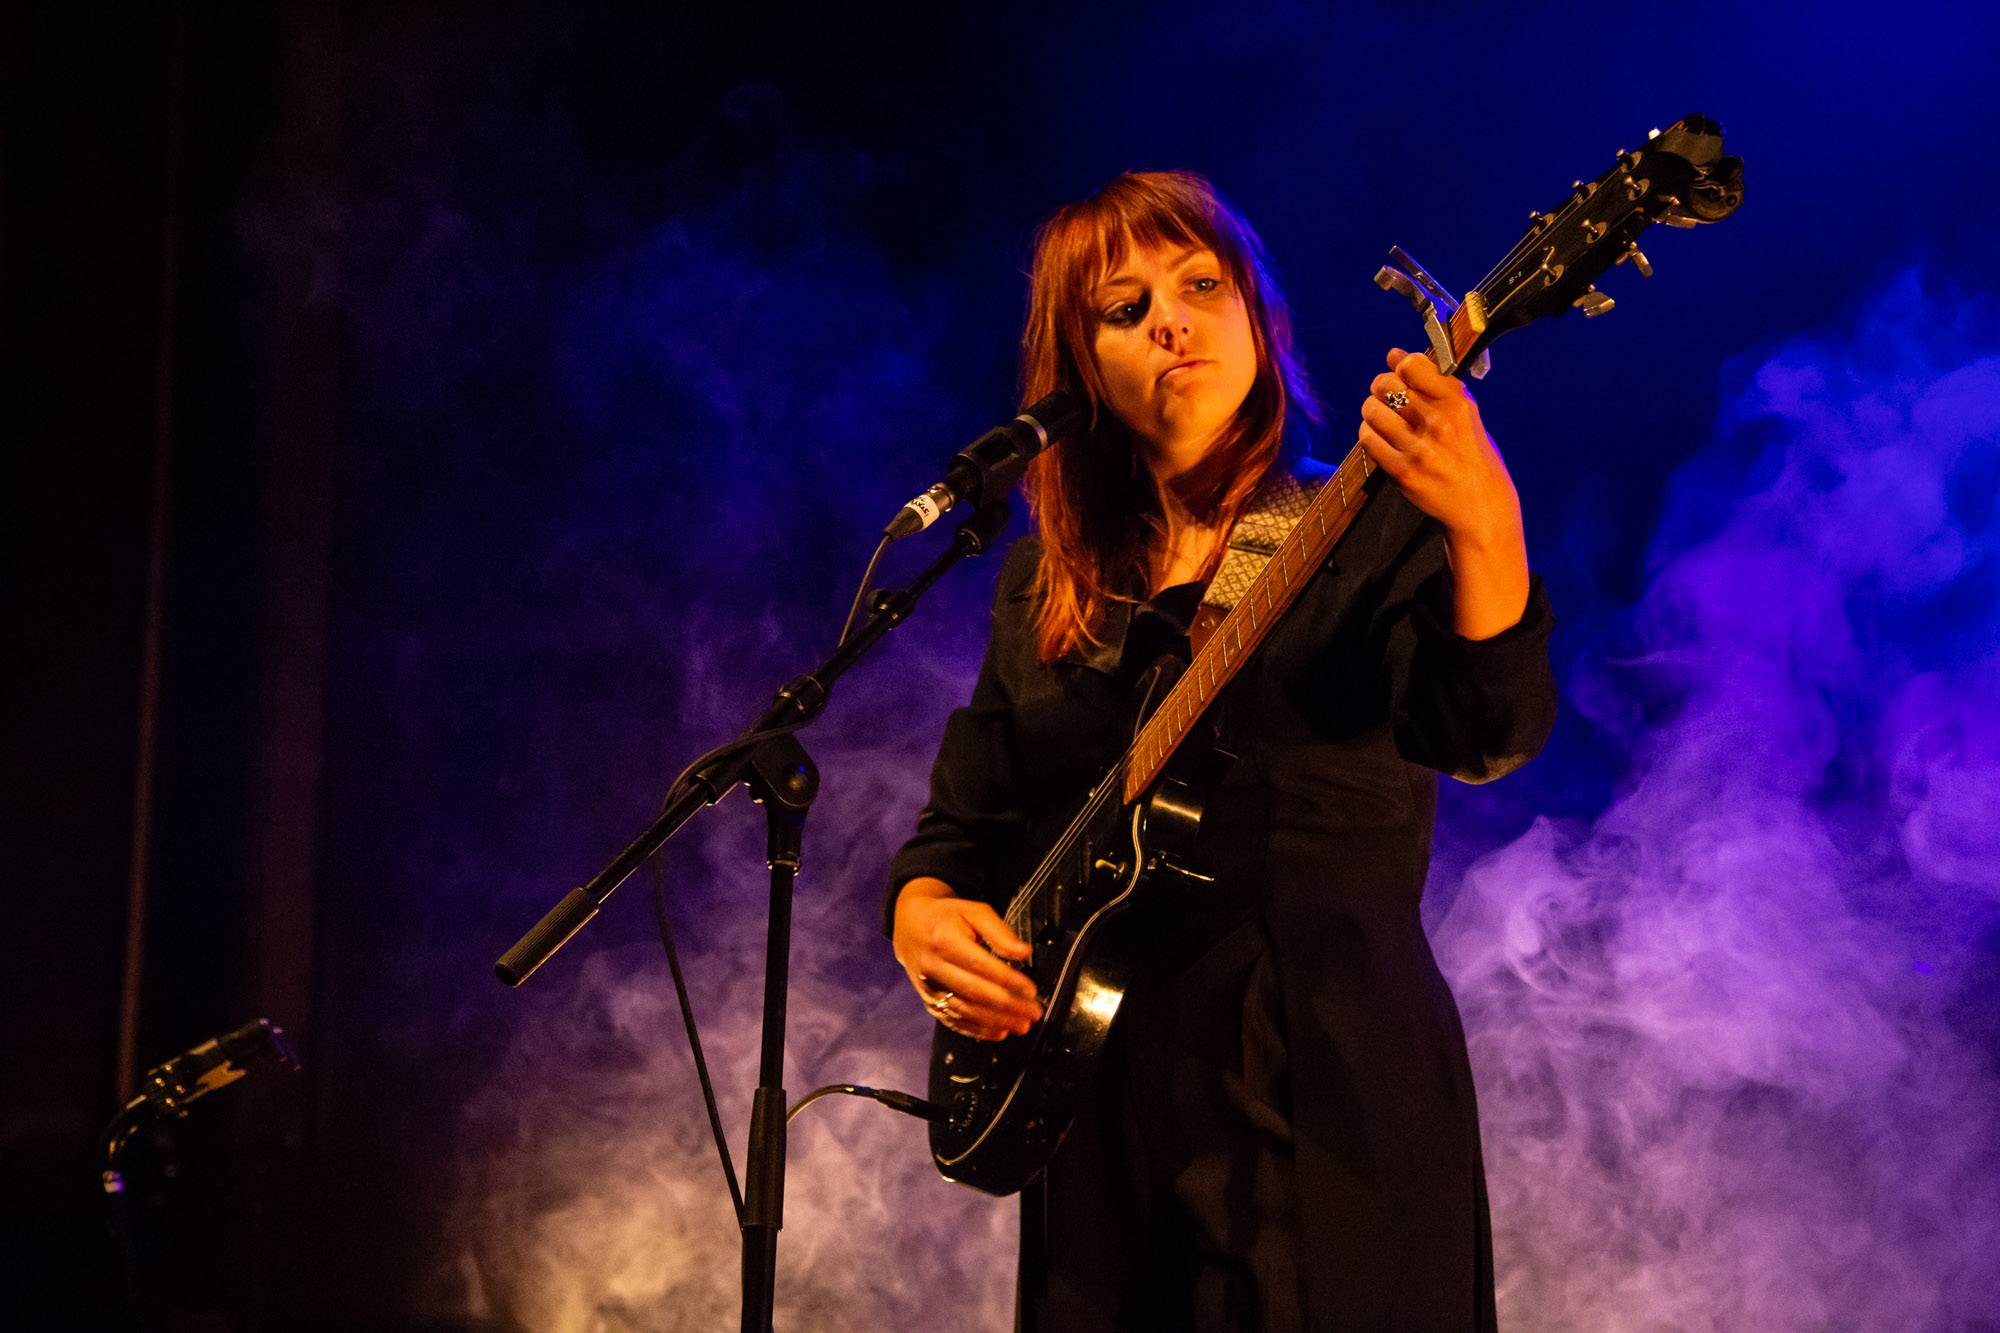 Angel Olsen at Westward Music Festival, Vancouver, Sep 15 2018. Kirk Chantraine photo.